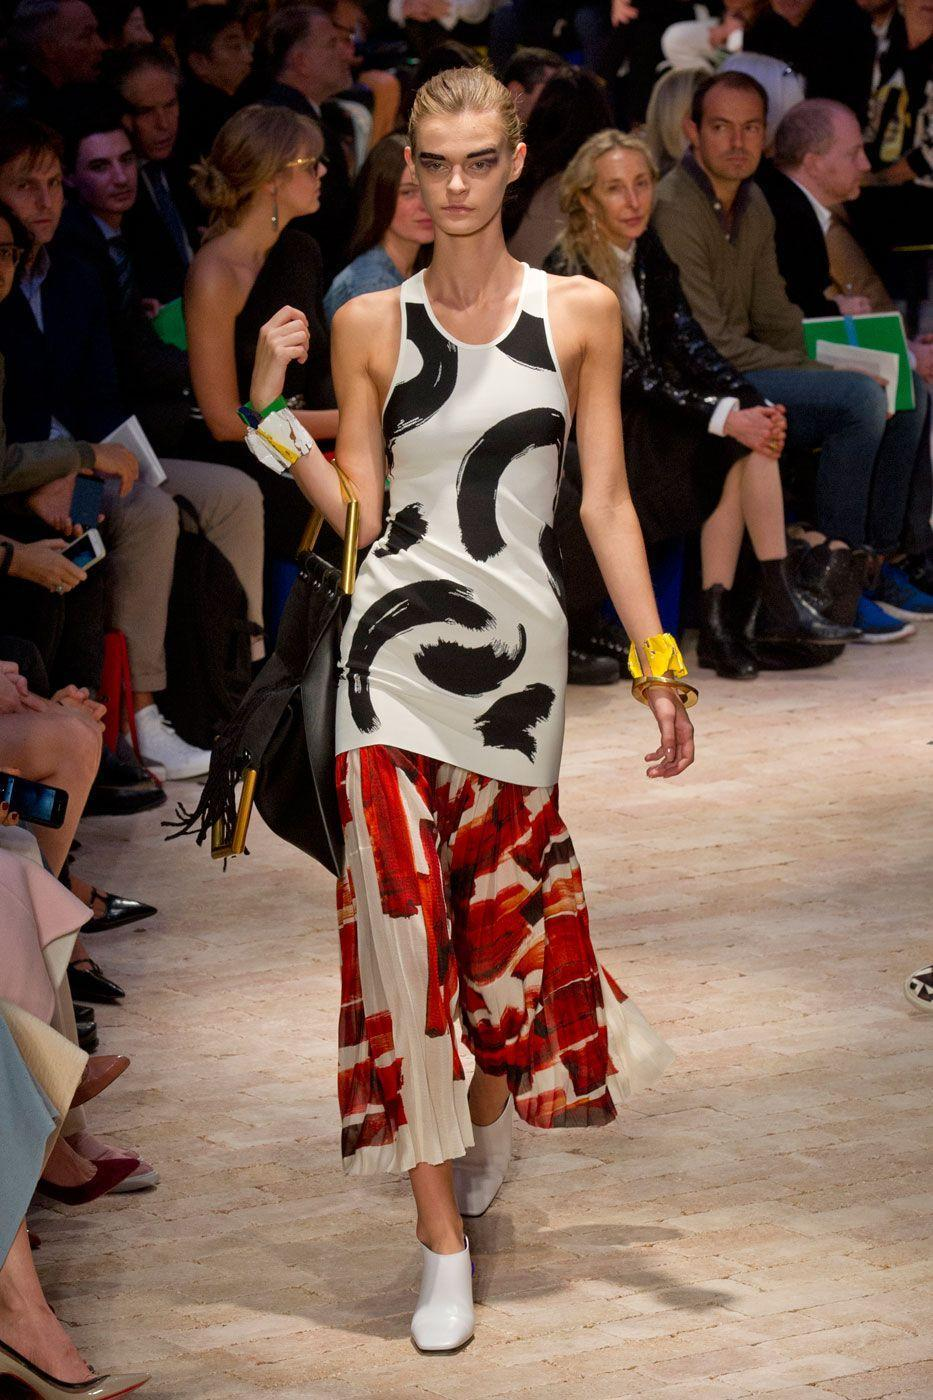 <p>Philo's SS14 collection introduced new energy to the luxury French label.</p><p>'This was such a standout collection; it felt as if Philo really went somewhere, having become known for navy and black,' says Molly Haylor, ELLE UK's market and accessories editor. </p><p>'All of a sudden I wanted to wear back long vests with splashes of colour and pleated skirts. You could open any magazine and the collection stood out compared to the other collections photographed that season.'</p>